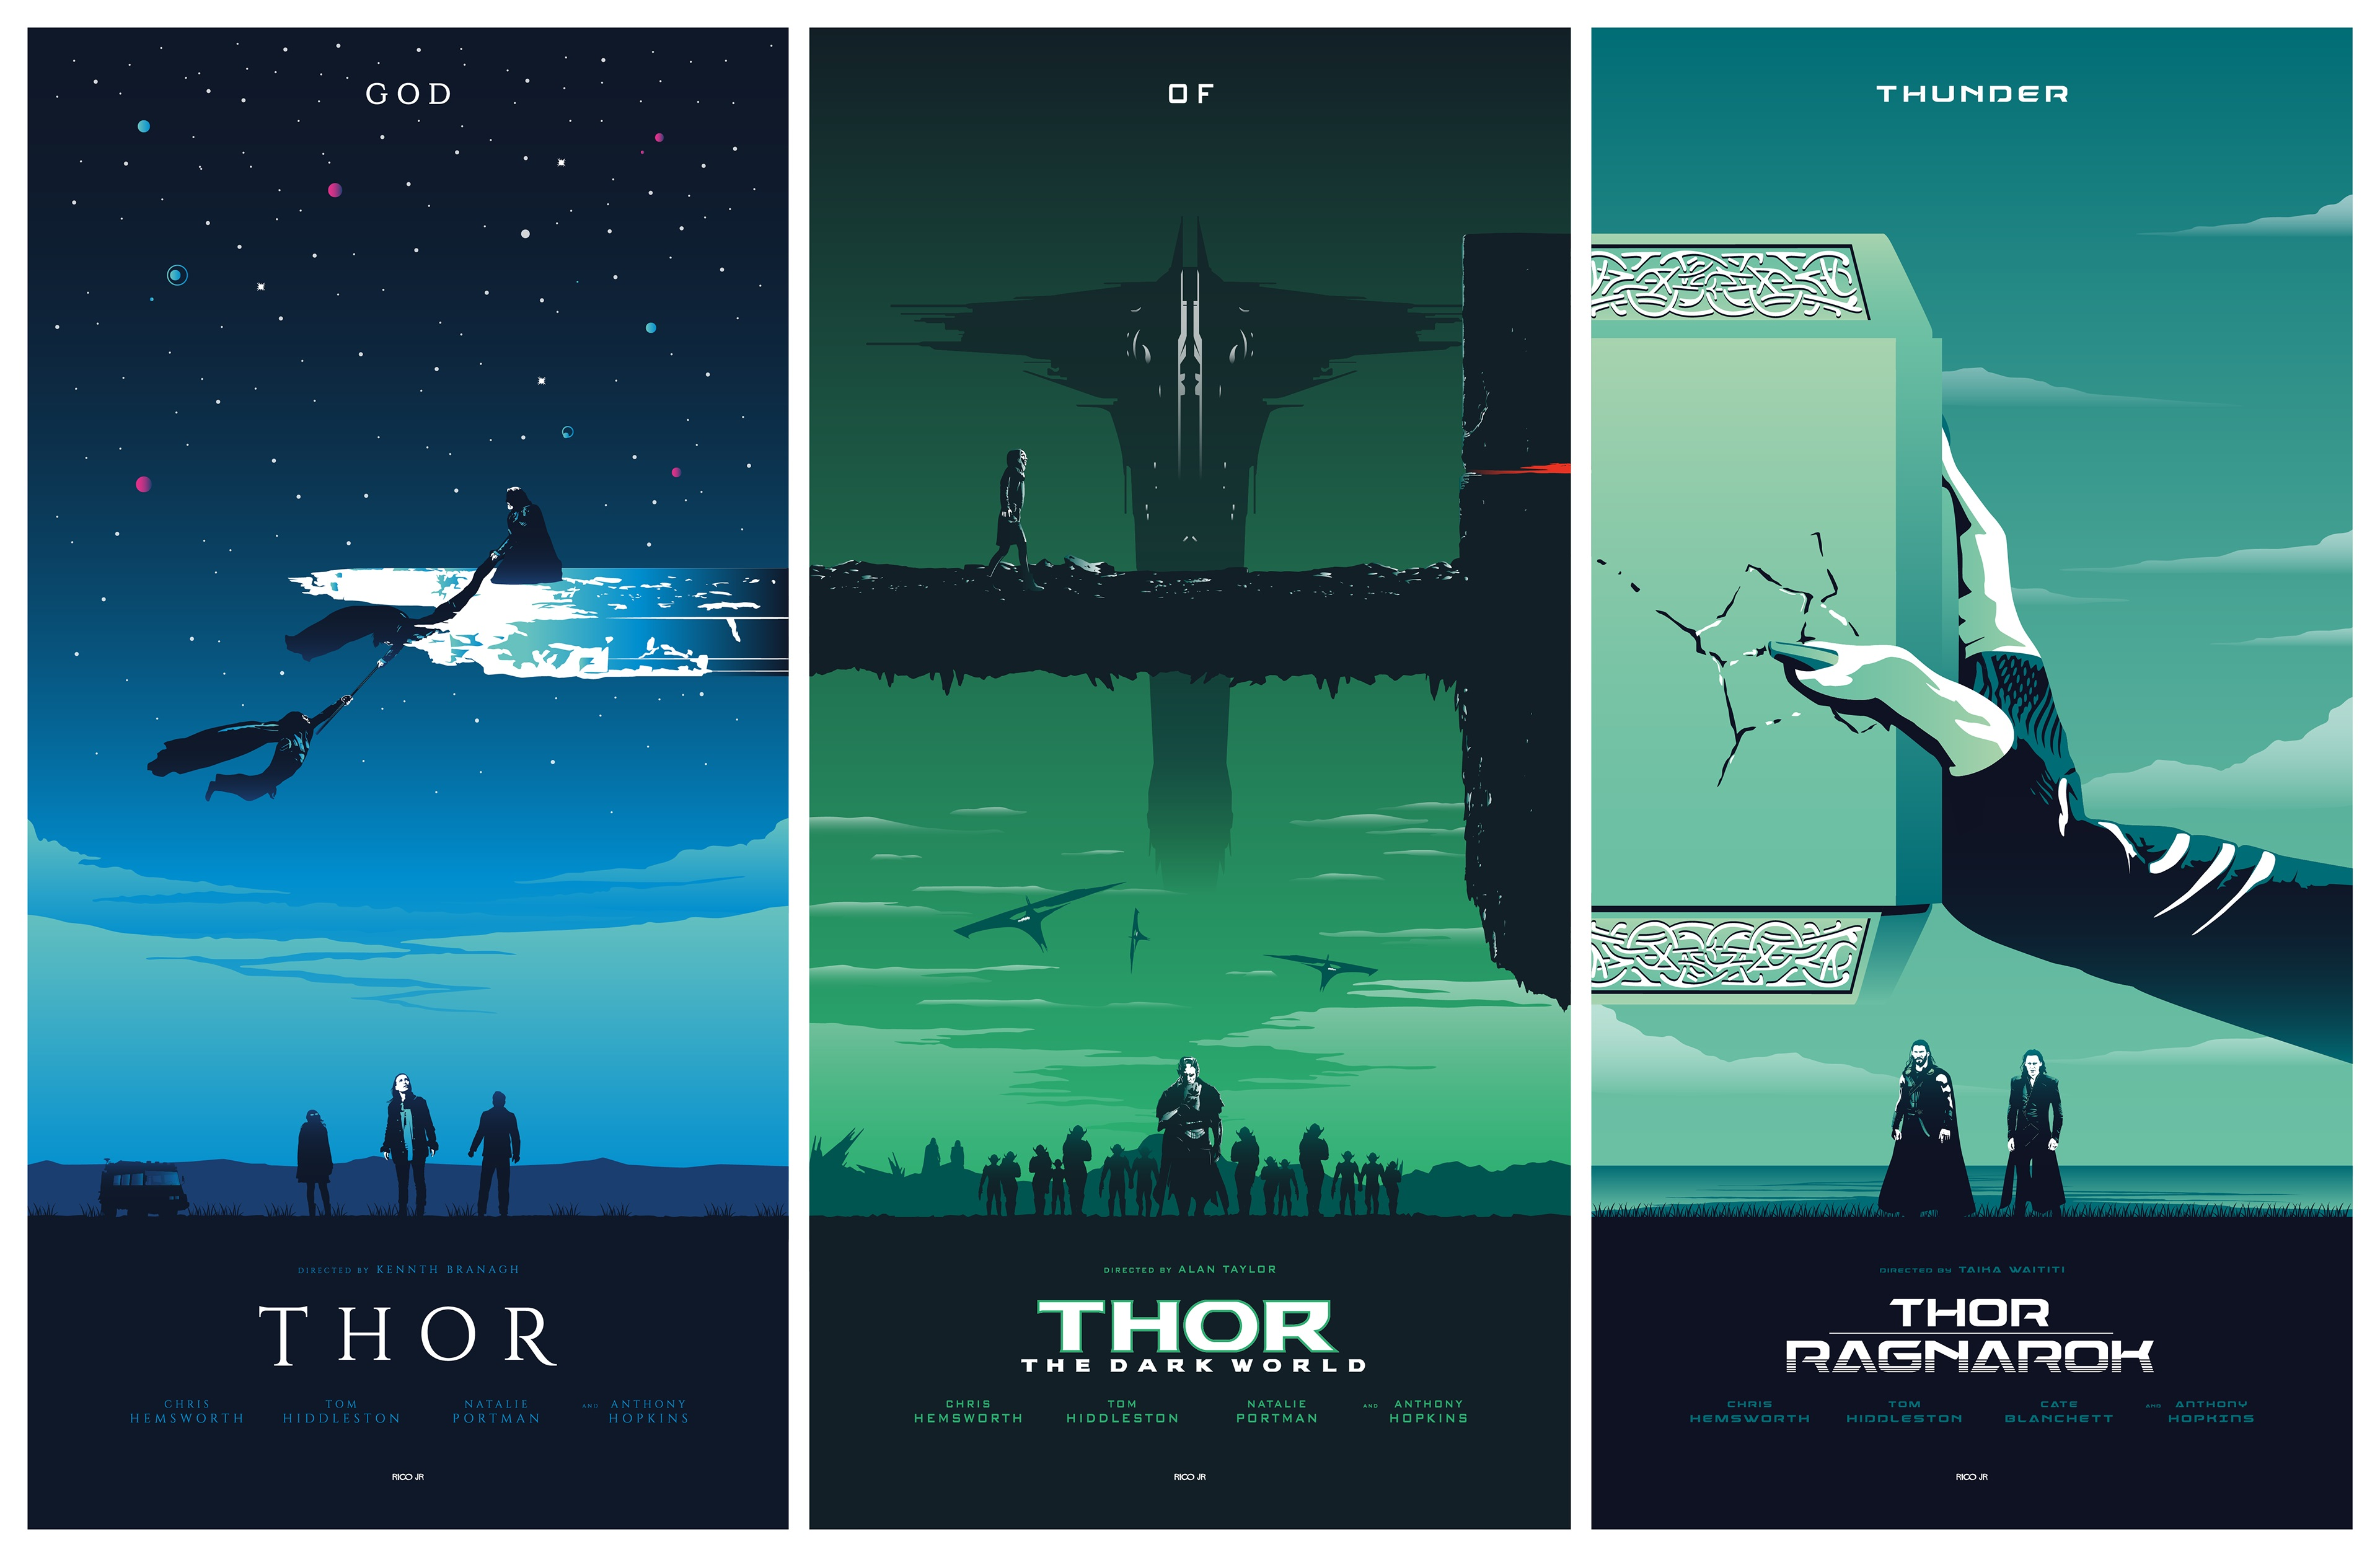 General 3840x2509 Thor movies poster movie poster Marvel Comics Marvel Cinematic Universe Thor : Ragnarok Mjolnir Loki Malekith Ragnarok Hela  collage blue green cyan